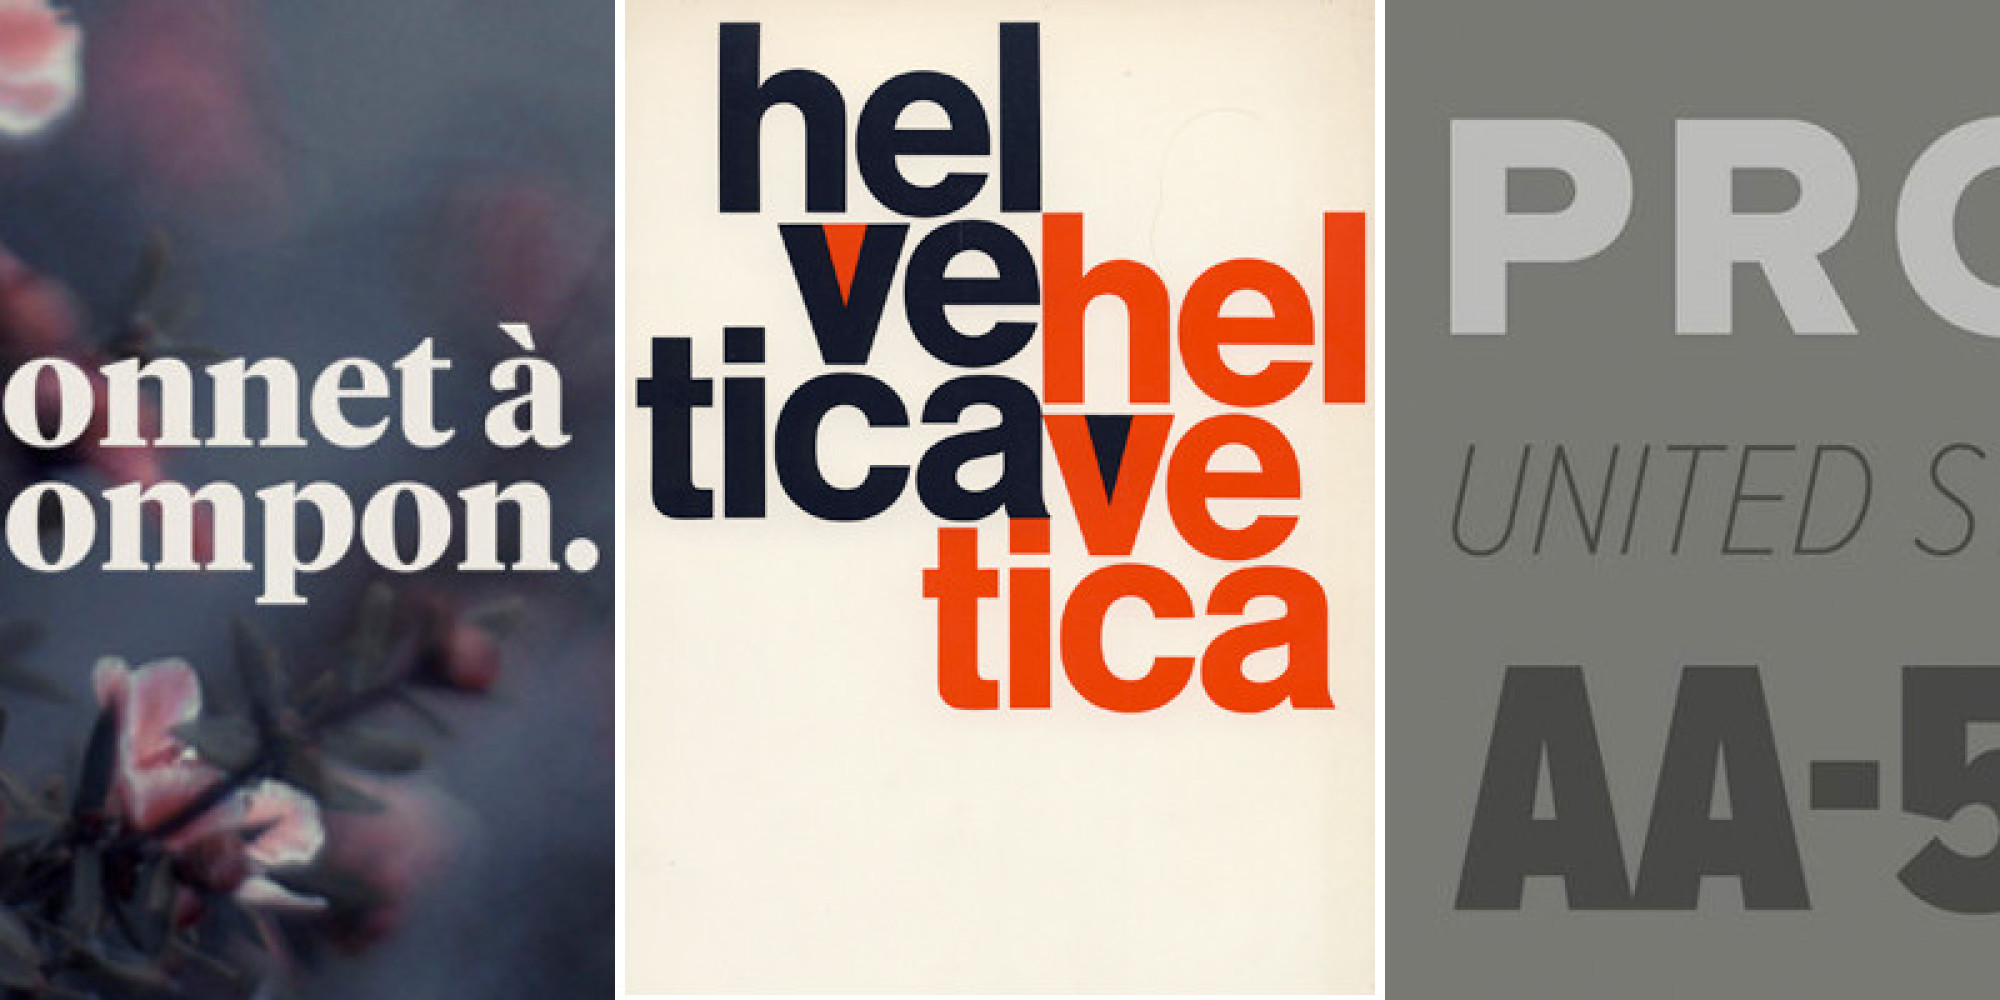 fonts that stand out according to designers web design news